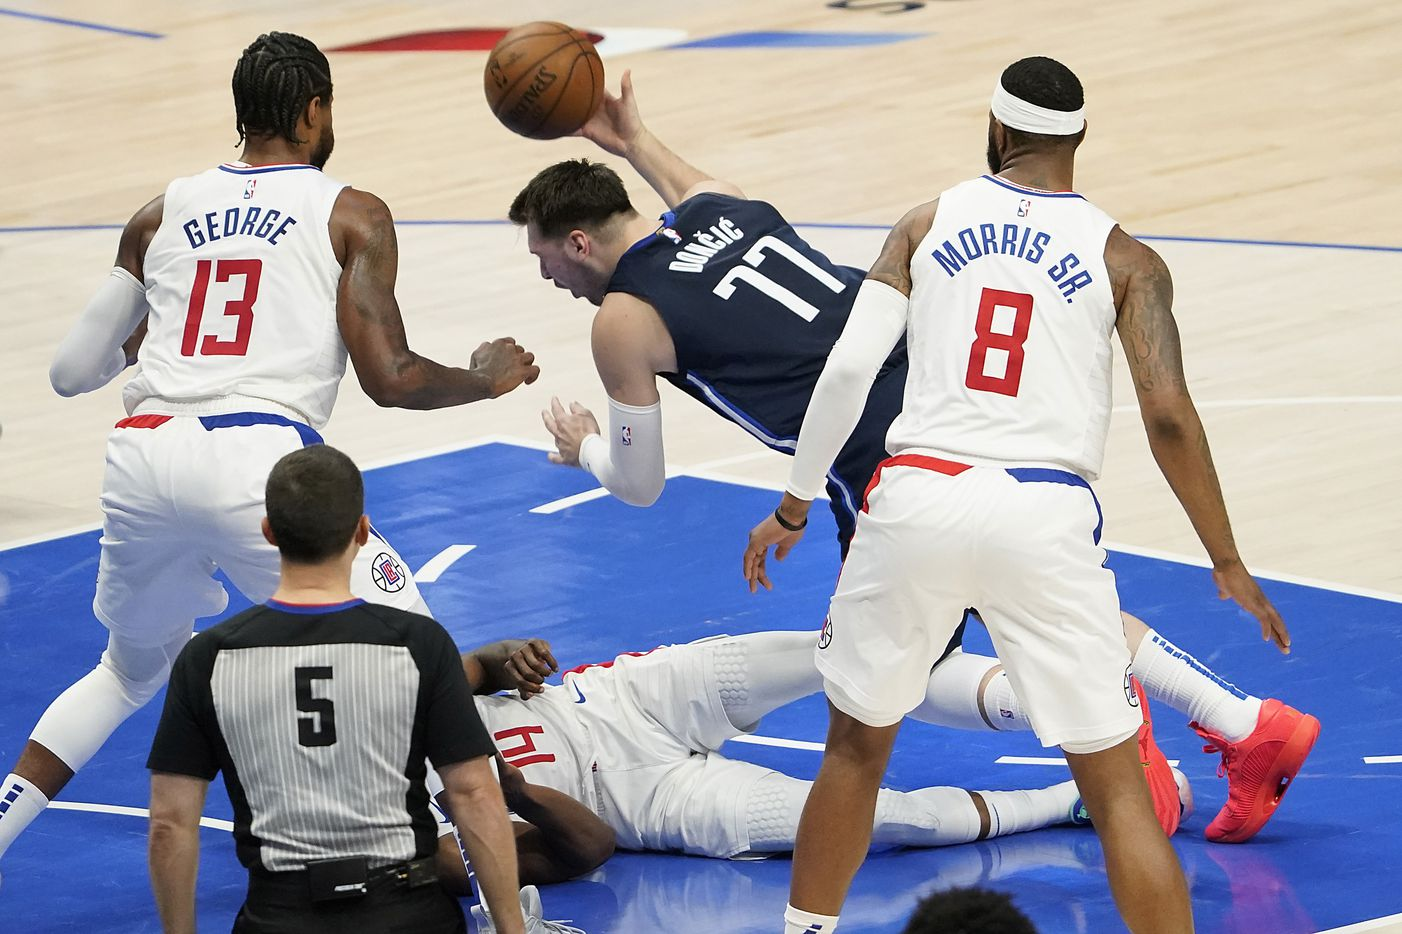 Dallas Mavericks guard Luka Doncic (77) tumbles over LA Clippers guard Terance Mann (14) during the second quarter of an NBA playoff basketball game at American Airlines Center on Friday, May 28, 2021, in Dallas.